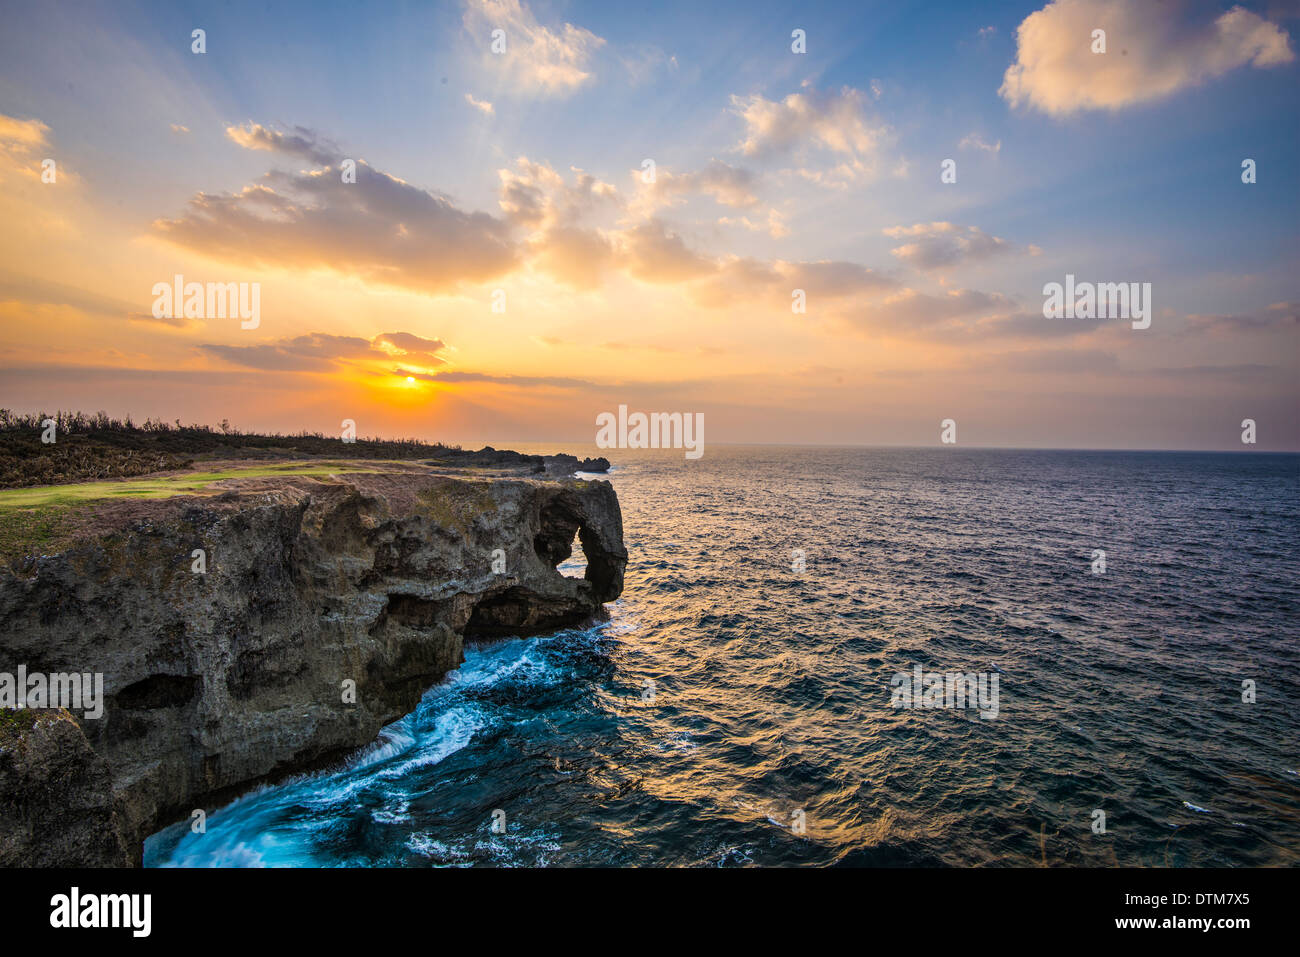 Manzamo Cape in Okinawa, Japan. - Stock Image